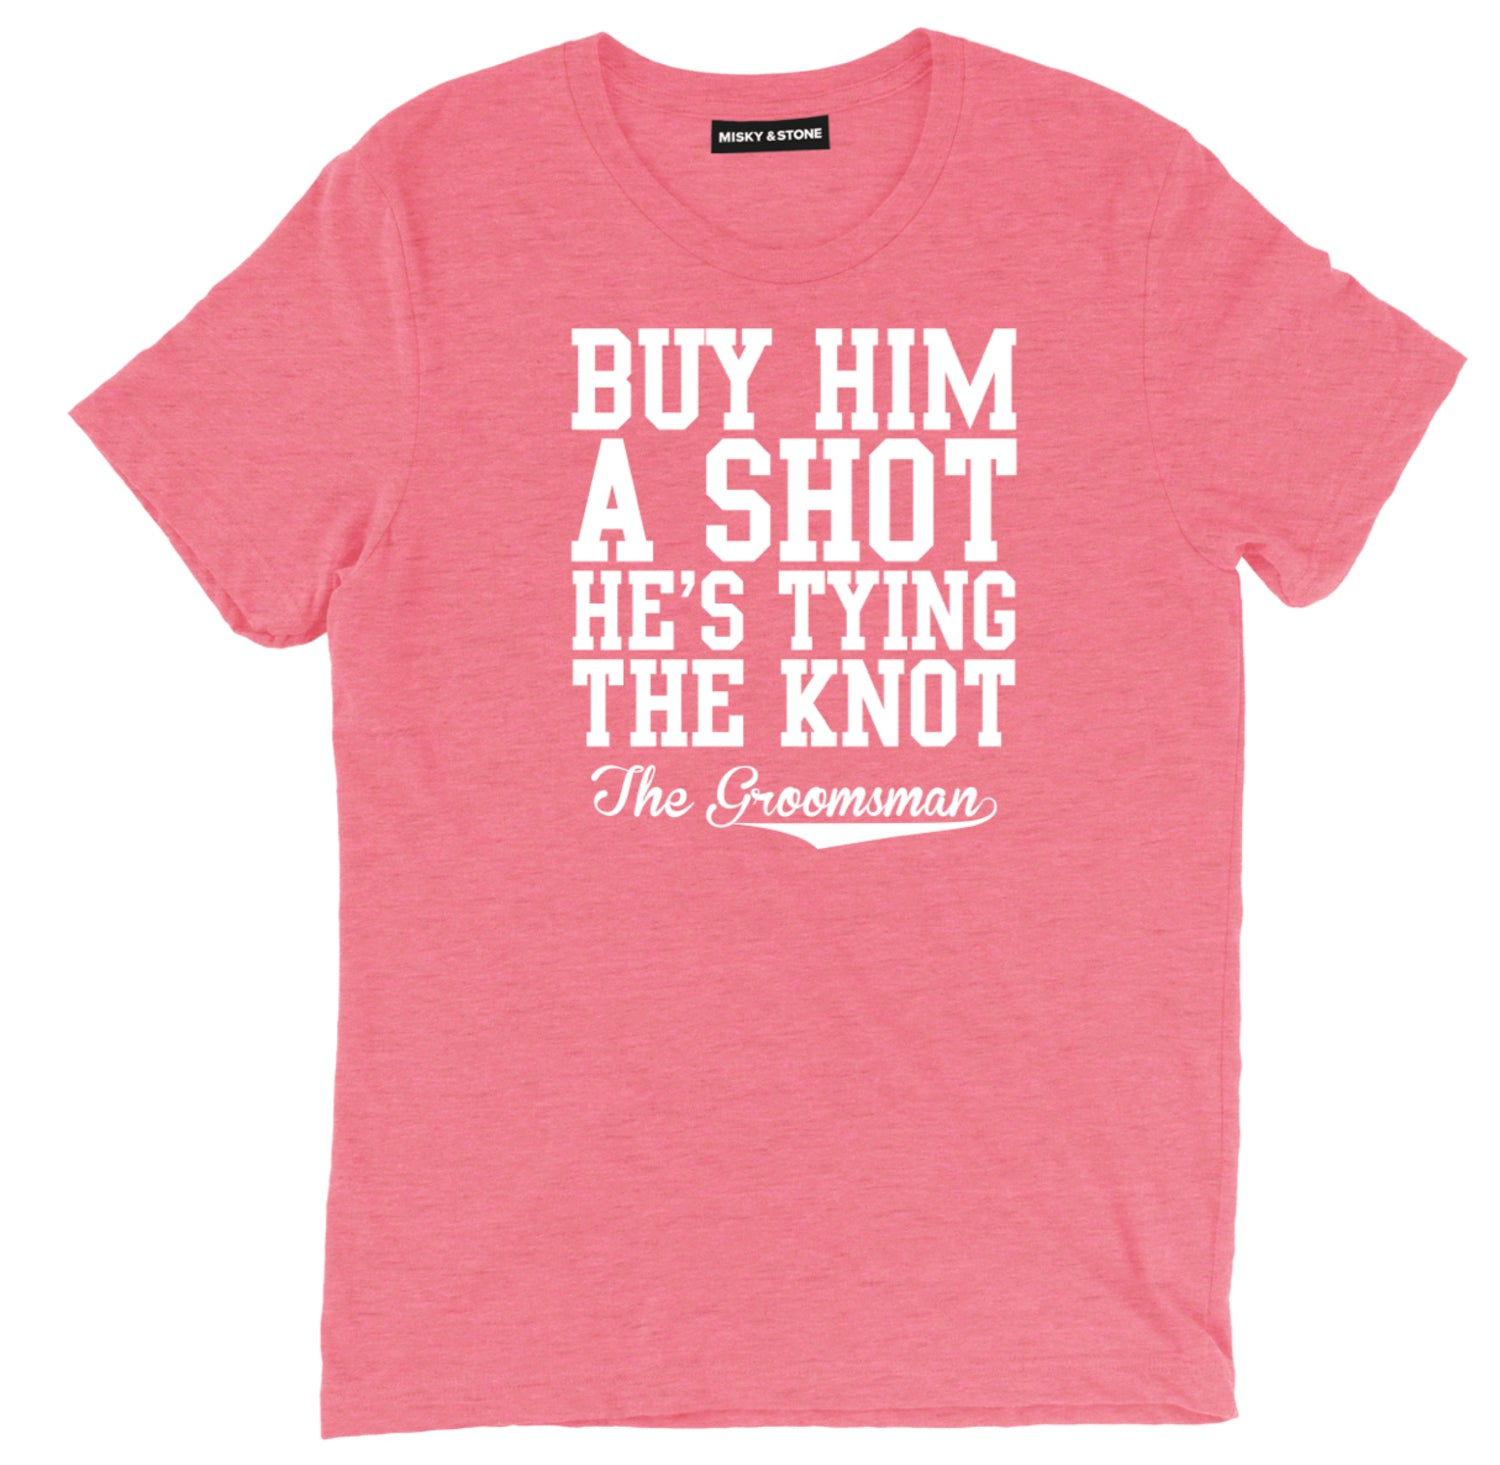 Buy Him A Shoot The Groomsman T-Shirt